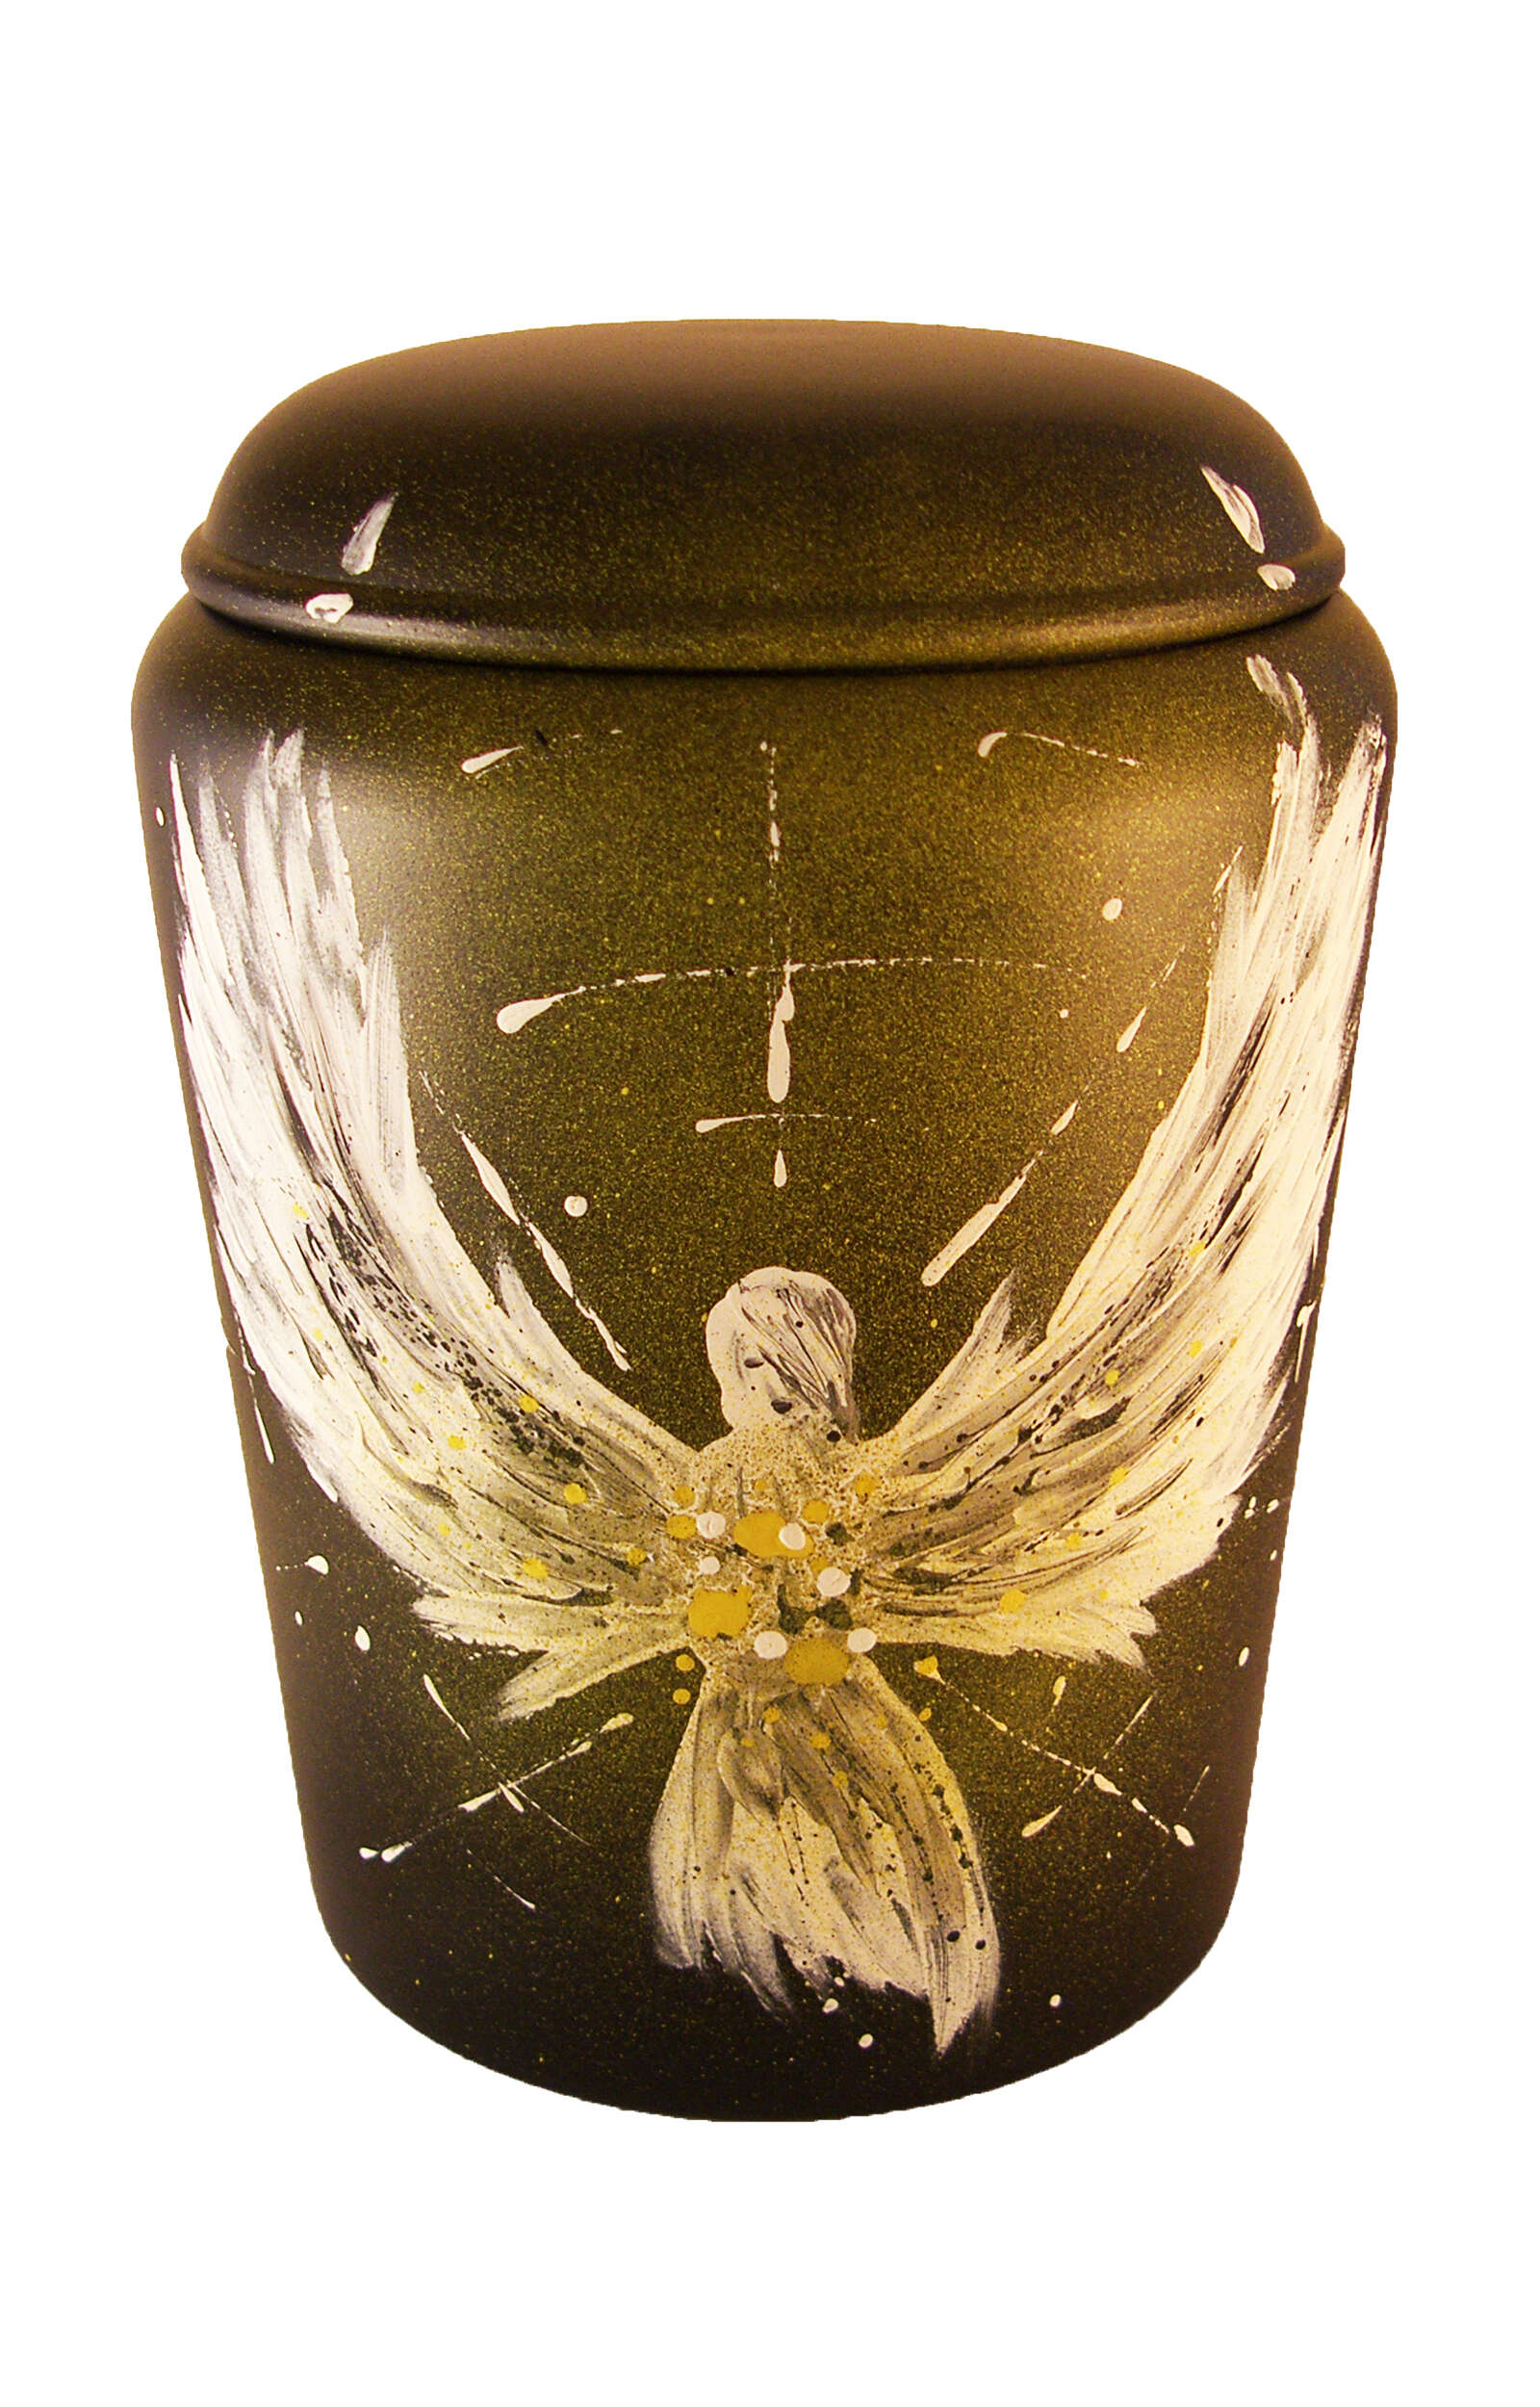 en BE3310 biodigradable urn comar angel of light funeral urns on sale yellow white